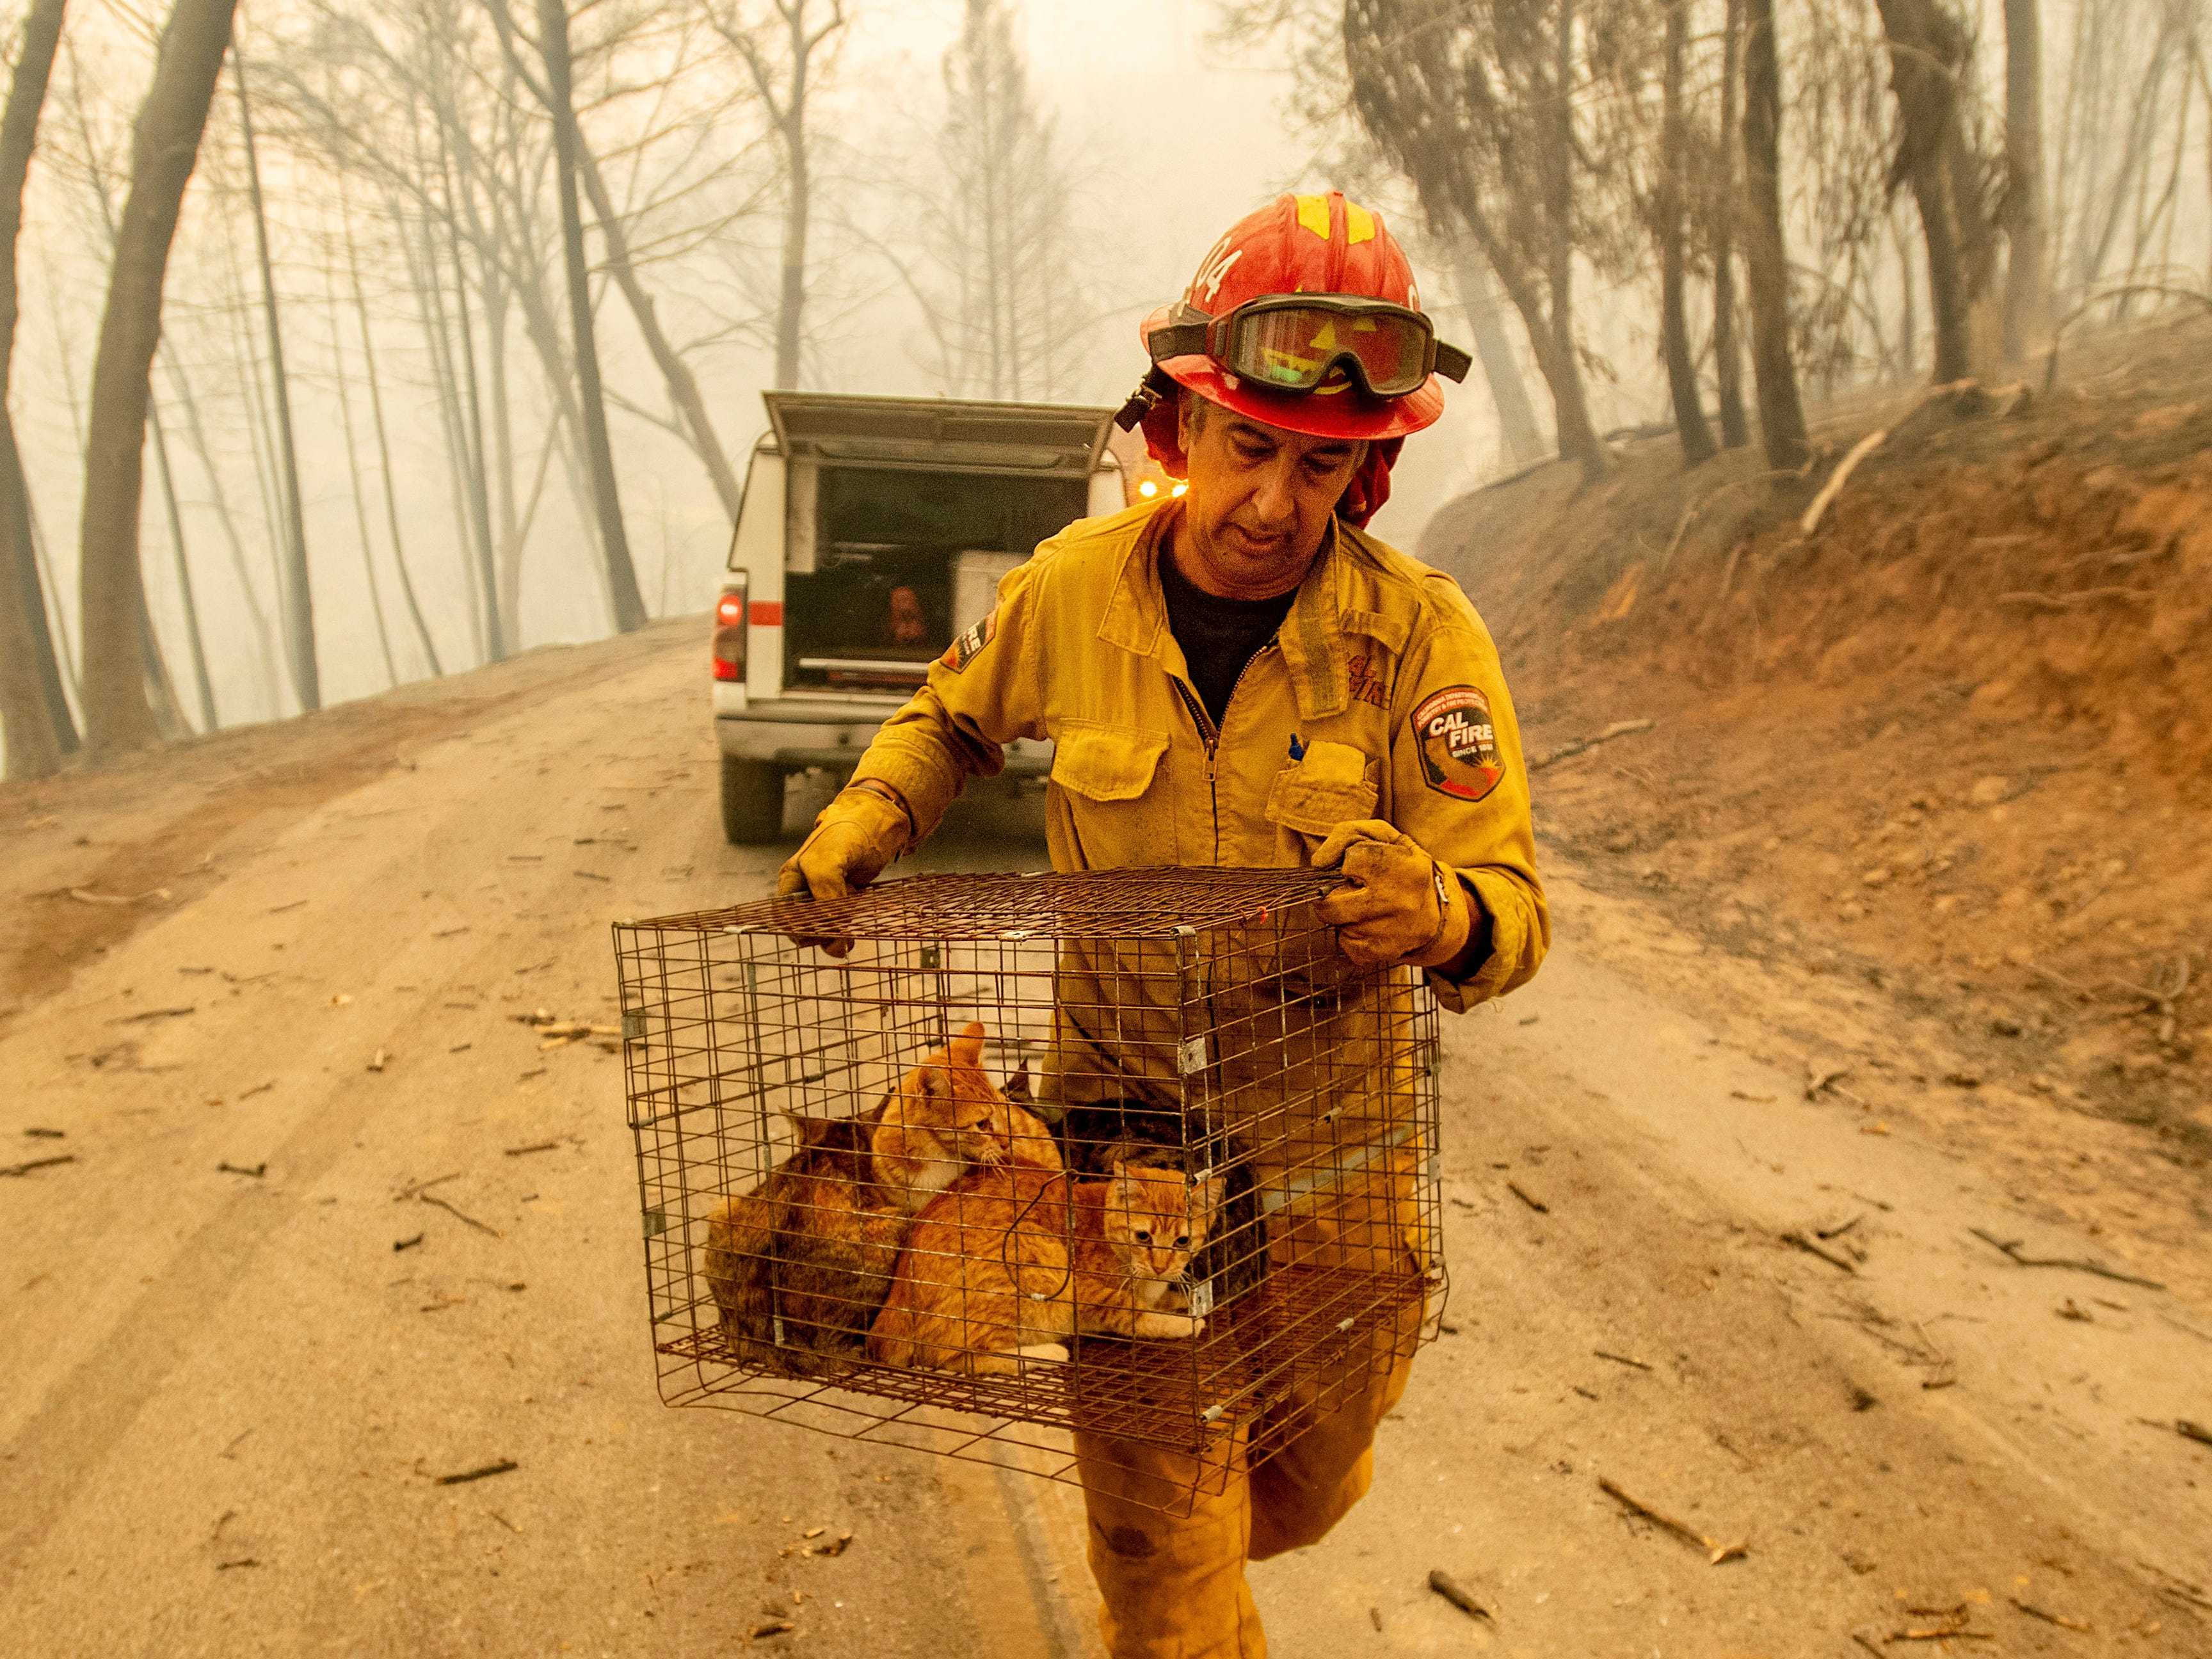 Capt. Steve Millosovich carries a cage of cats while battling the Camp Fire in Big Bend, Calif., on Friday, Nov. 9, 2018. He said the cage fell from the bed of a pickup  as an evacuee drove to safety.